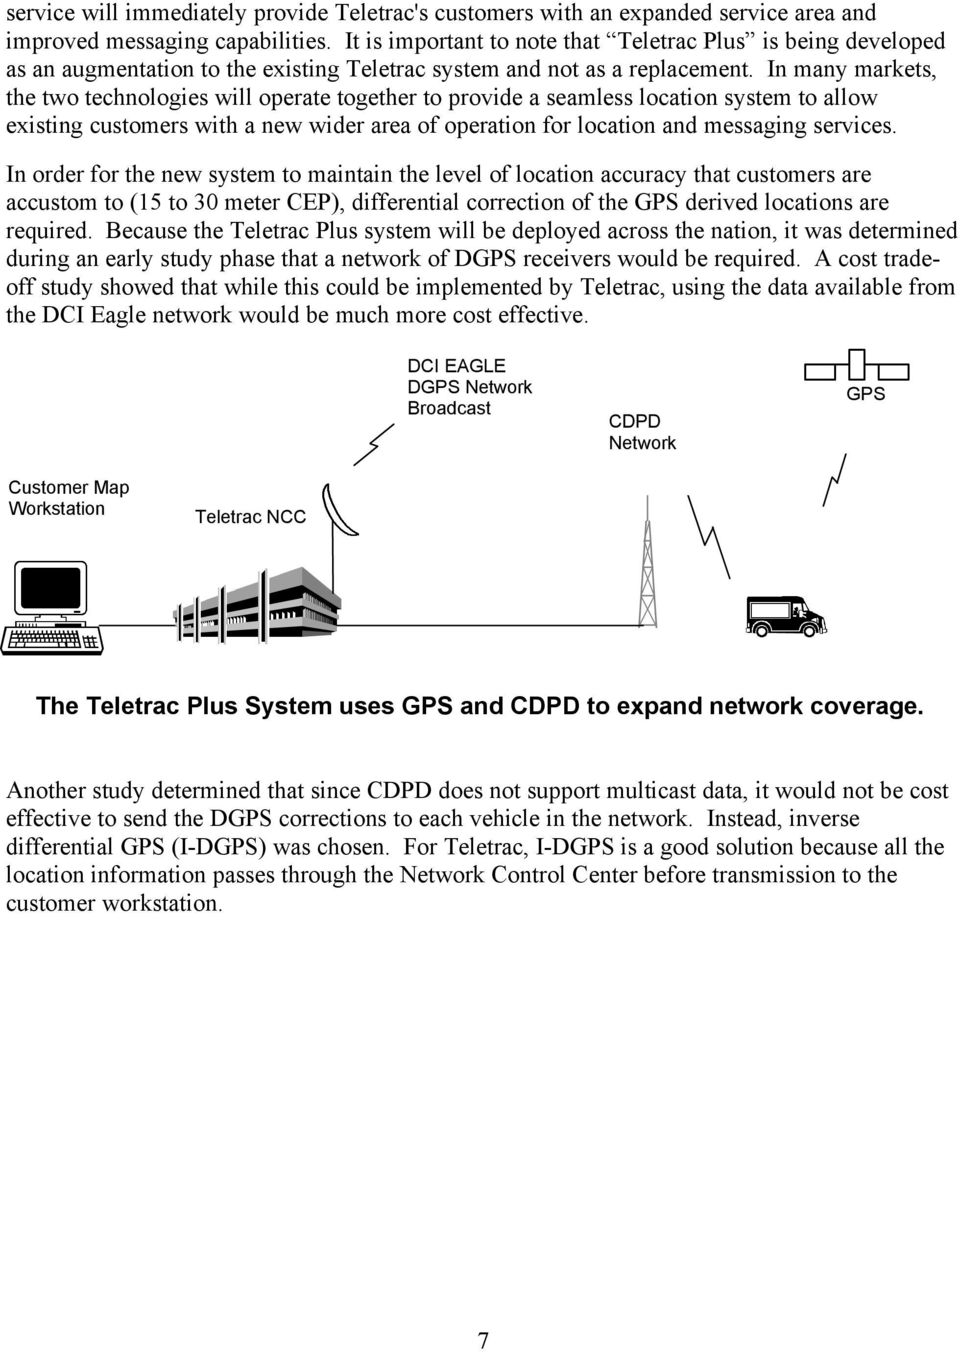 Wide Area Inverse DGPS For Fleet Operations - PDF